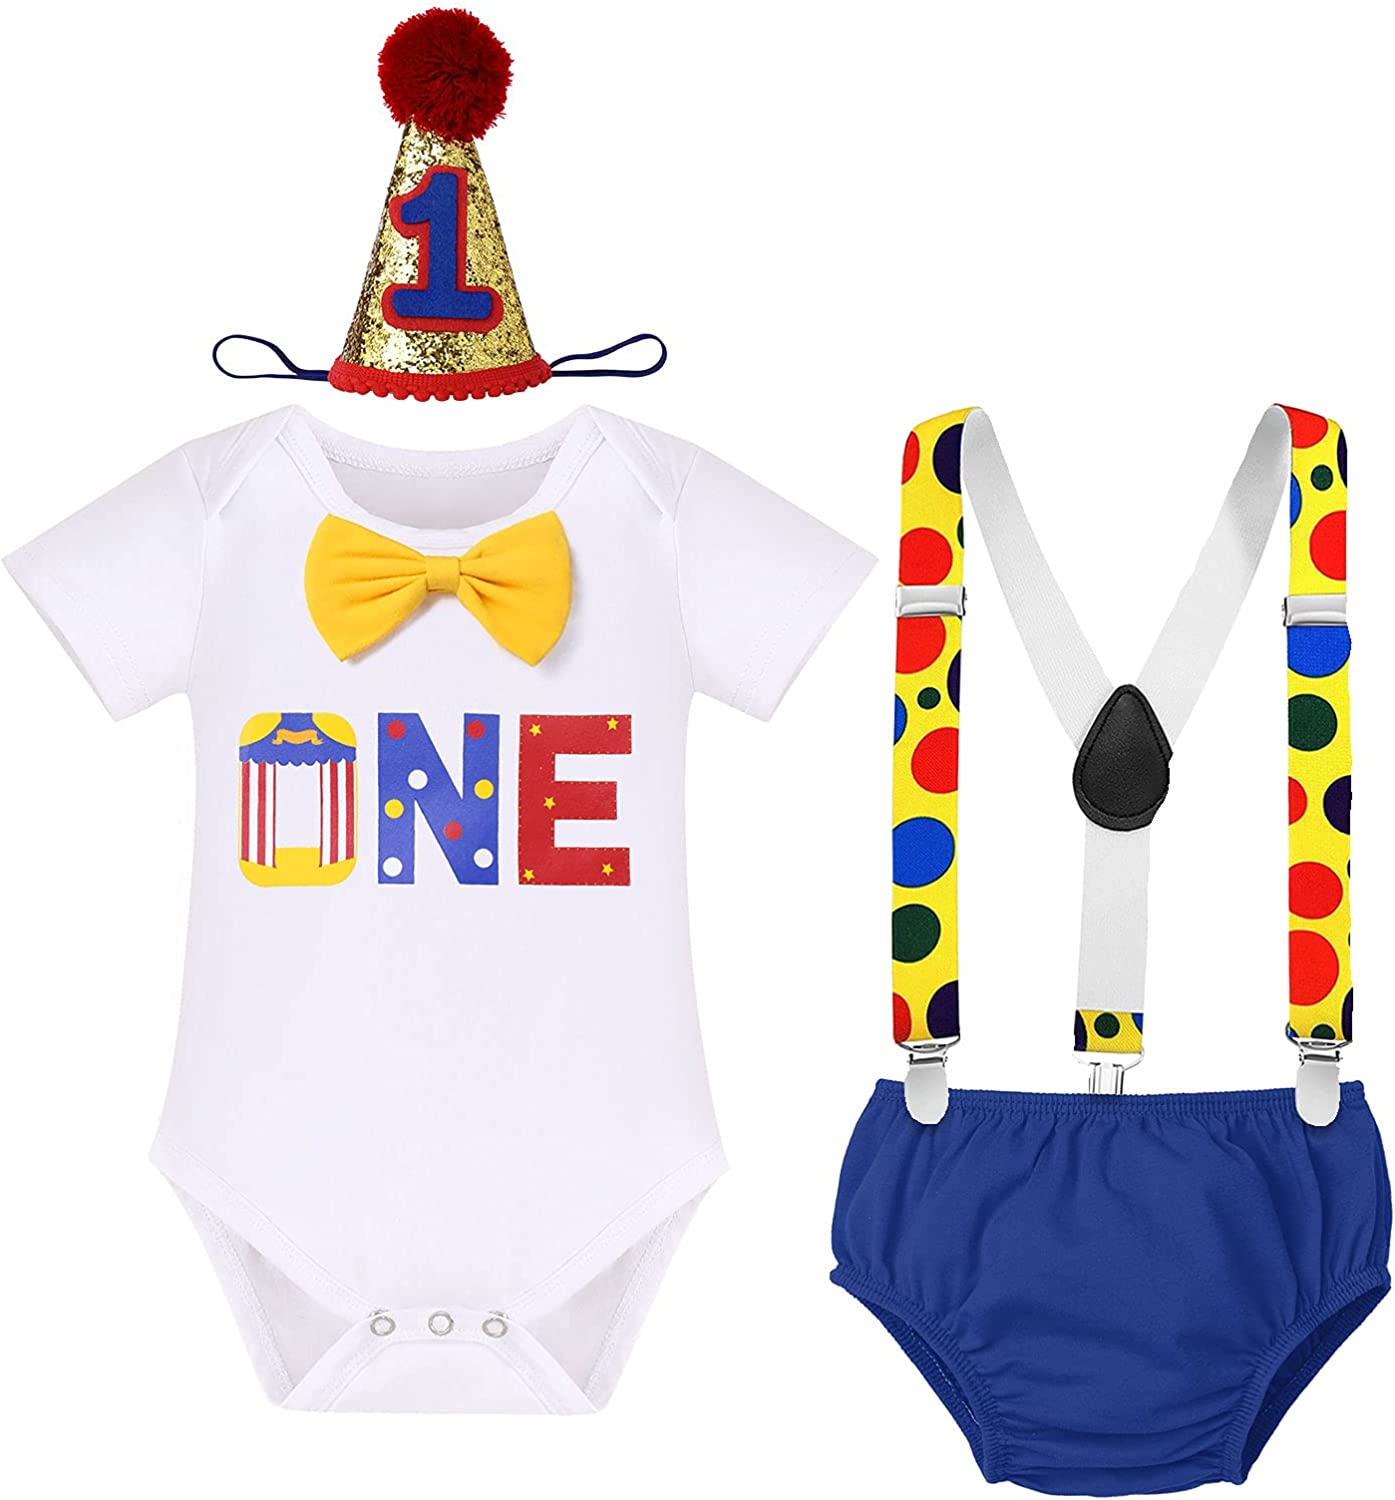 Circus Carnival Theme 1st Birthday Cake Smash Outfit for Baby Boy Suspenders Bowtie Hat Photo Props Costume